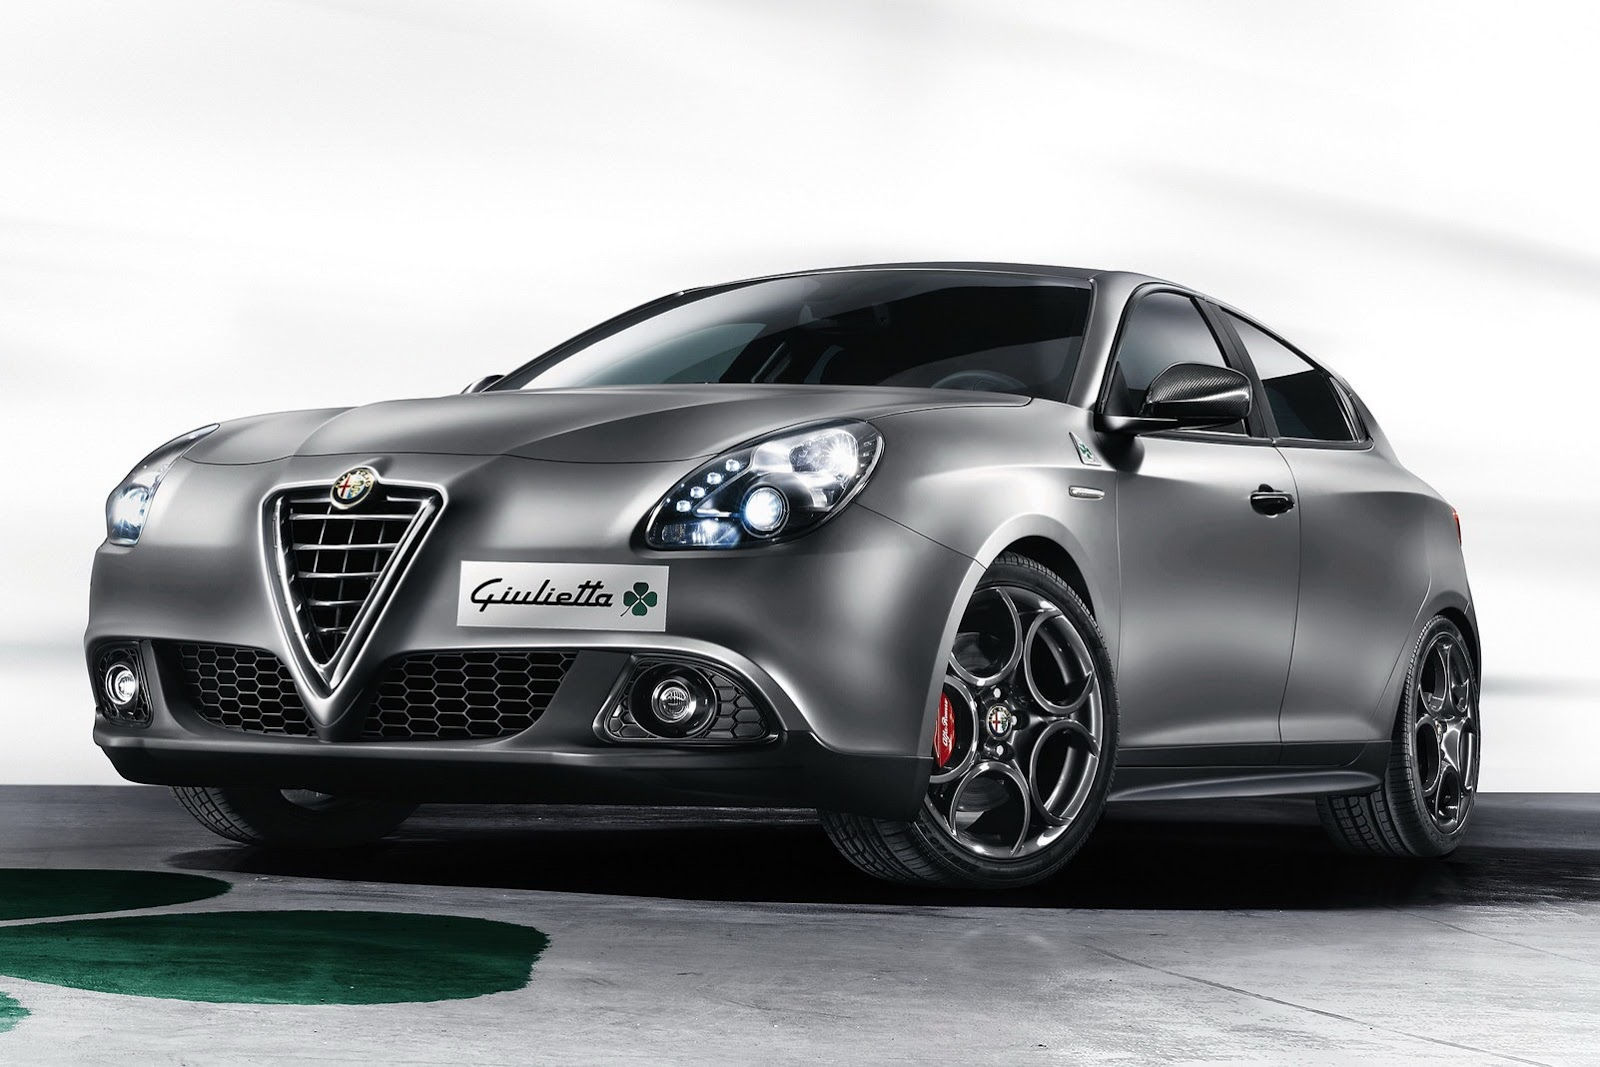 alfa romeo giulietta mito quadrifoglio verde 2015 auto blog. Black Bedroom Furniture Sets. Home Design Ideas